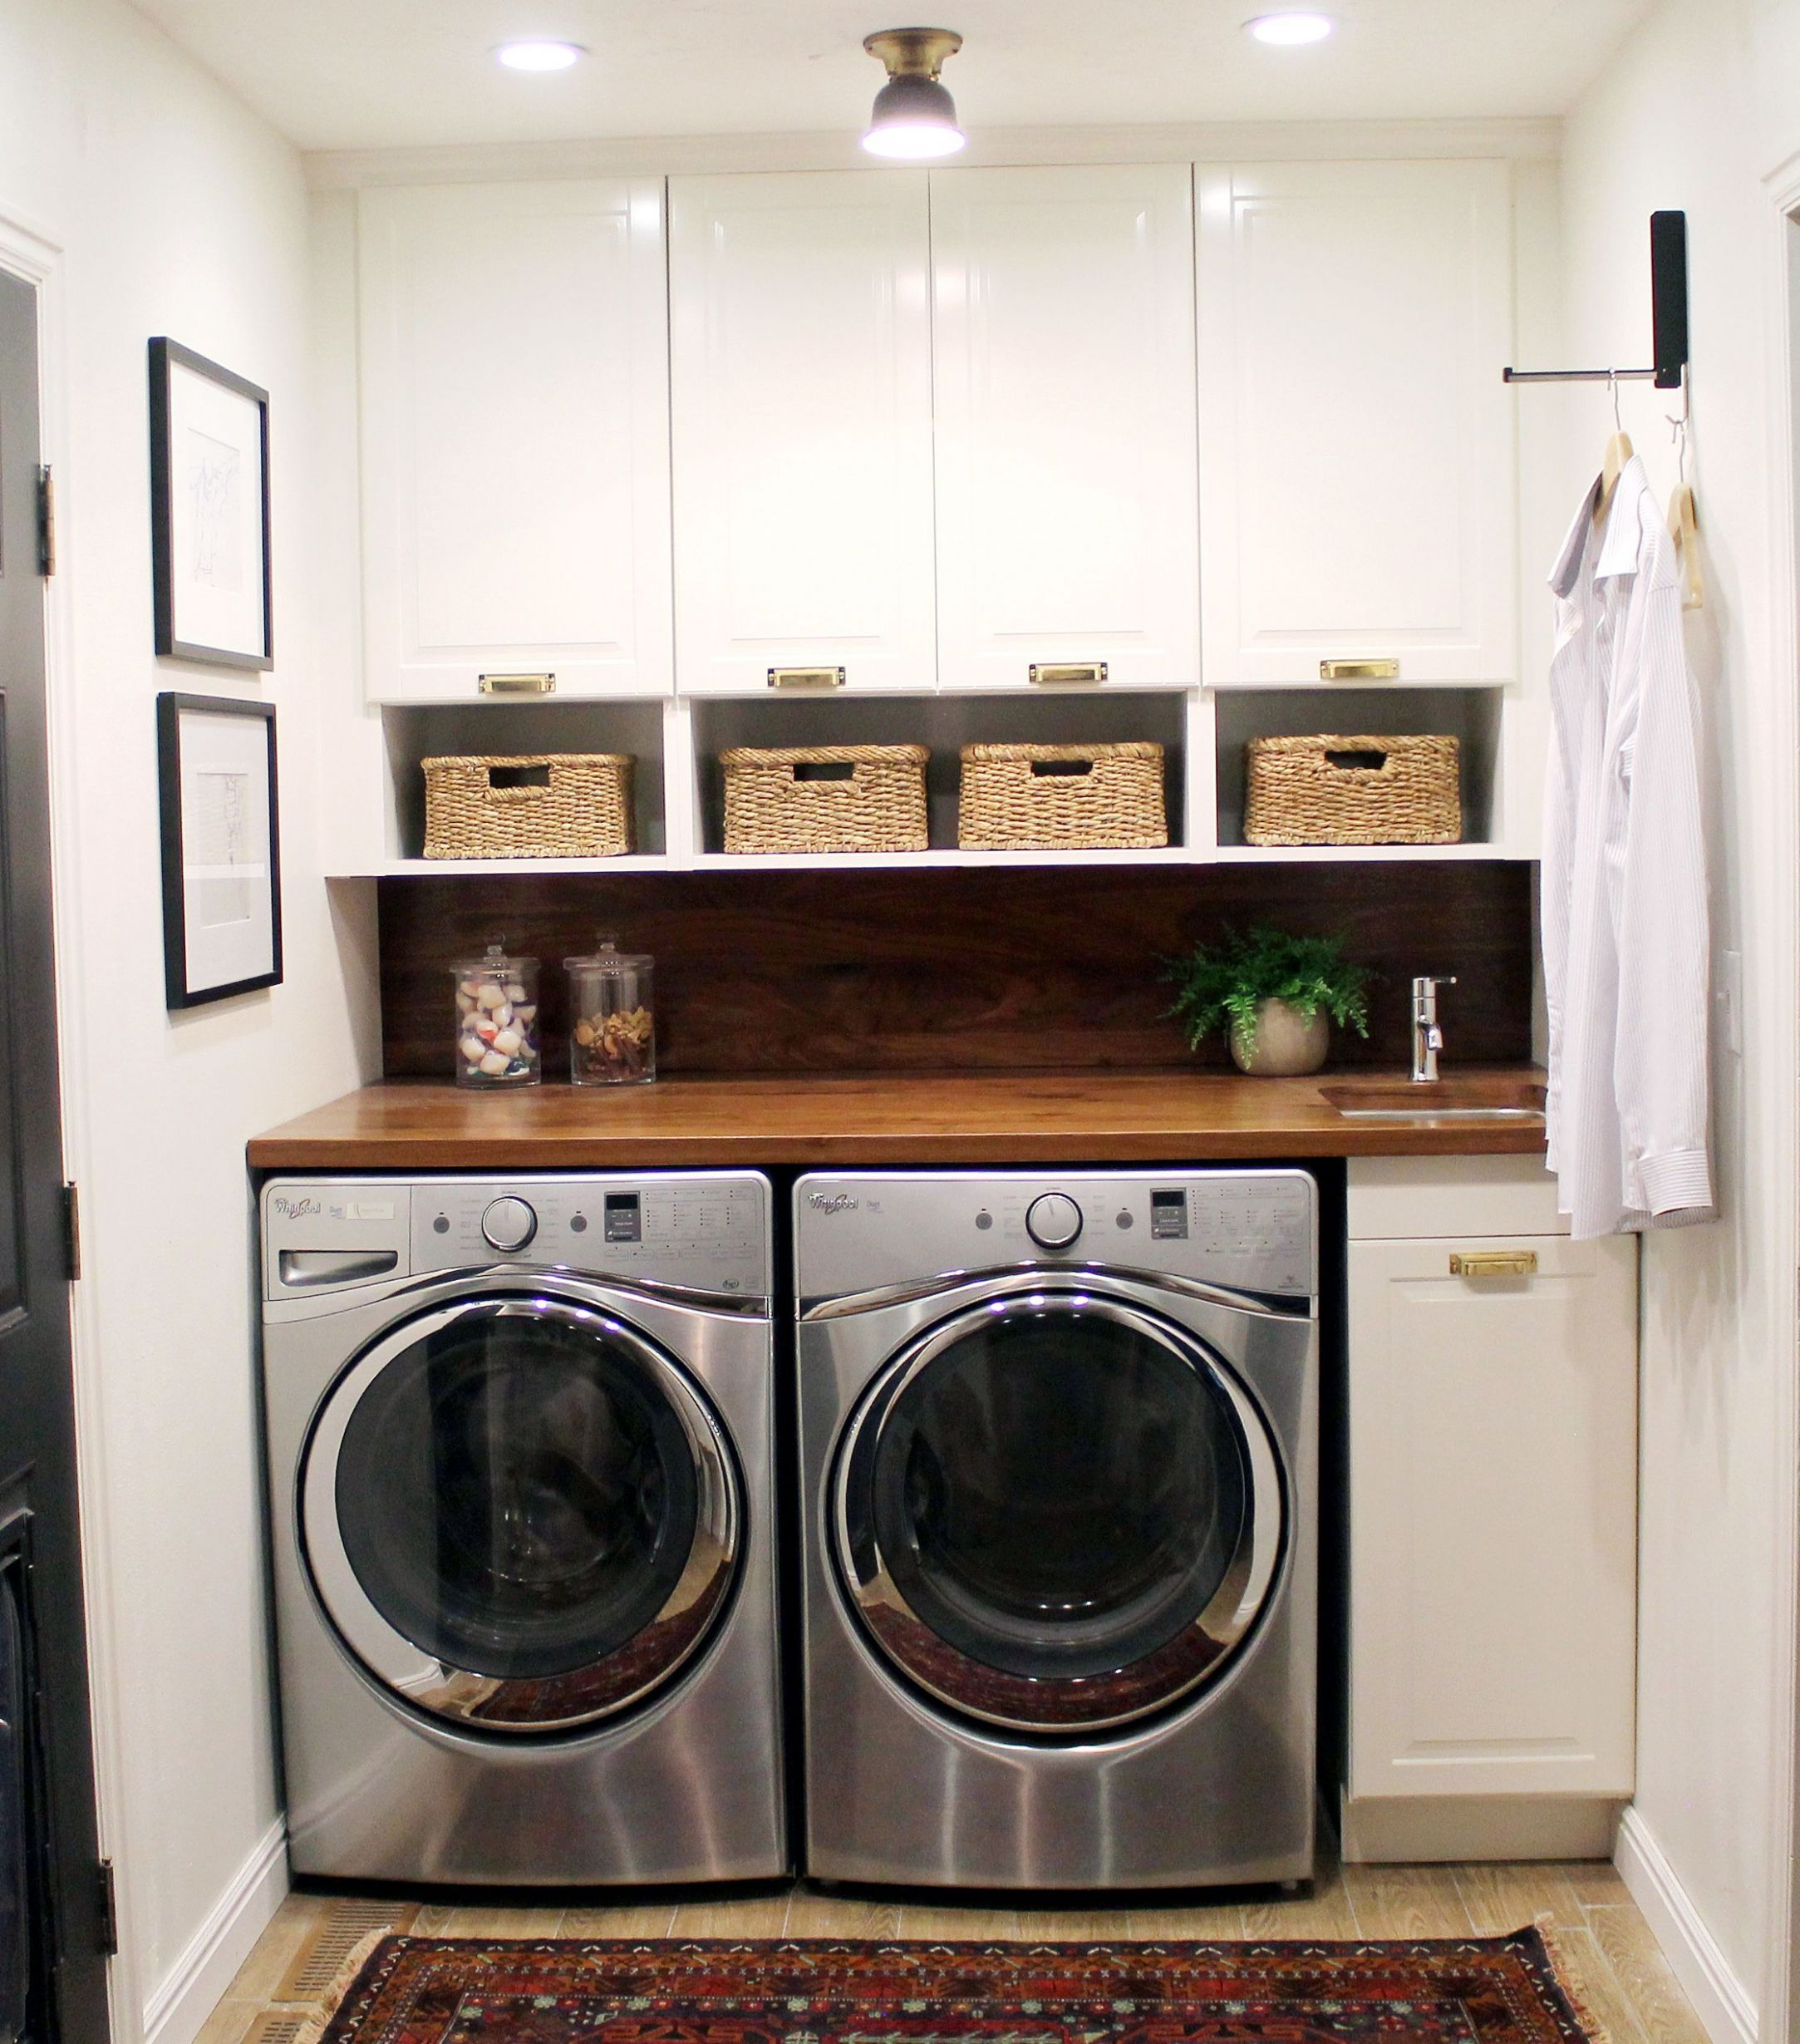 Before and After: A Bathroom Turned Laundry Room(이미지 포함 ..